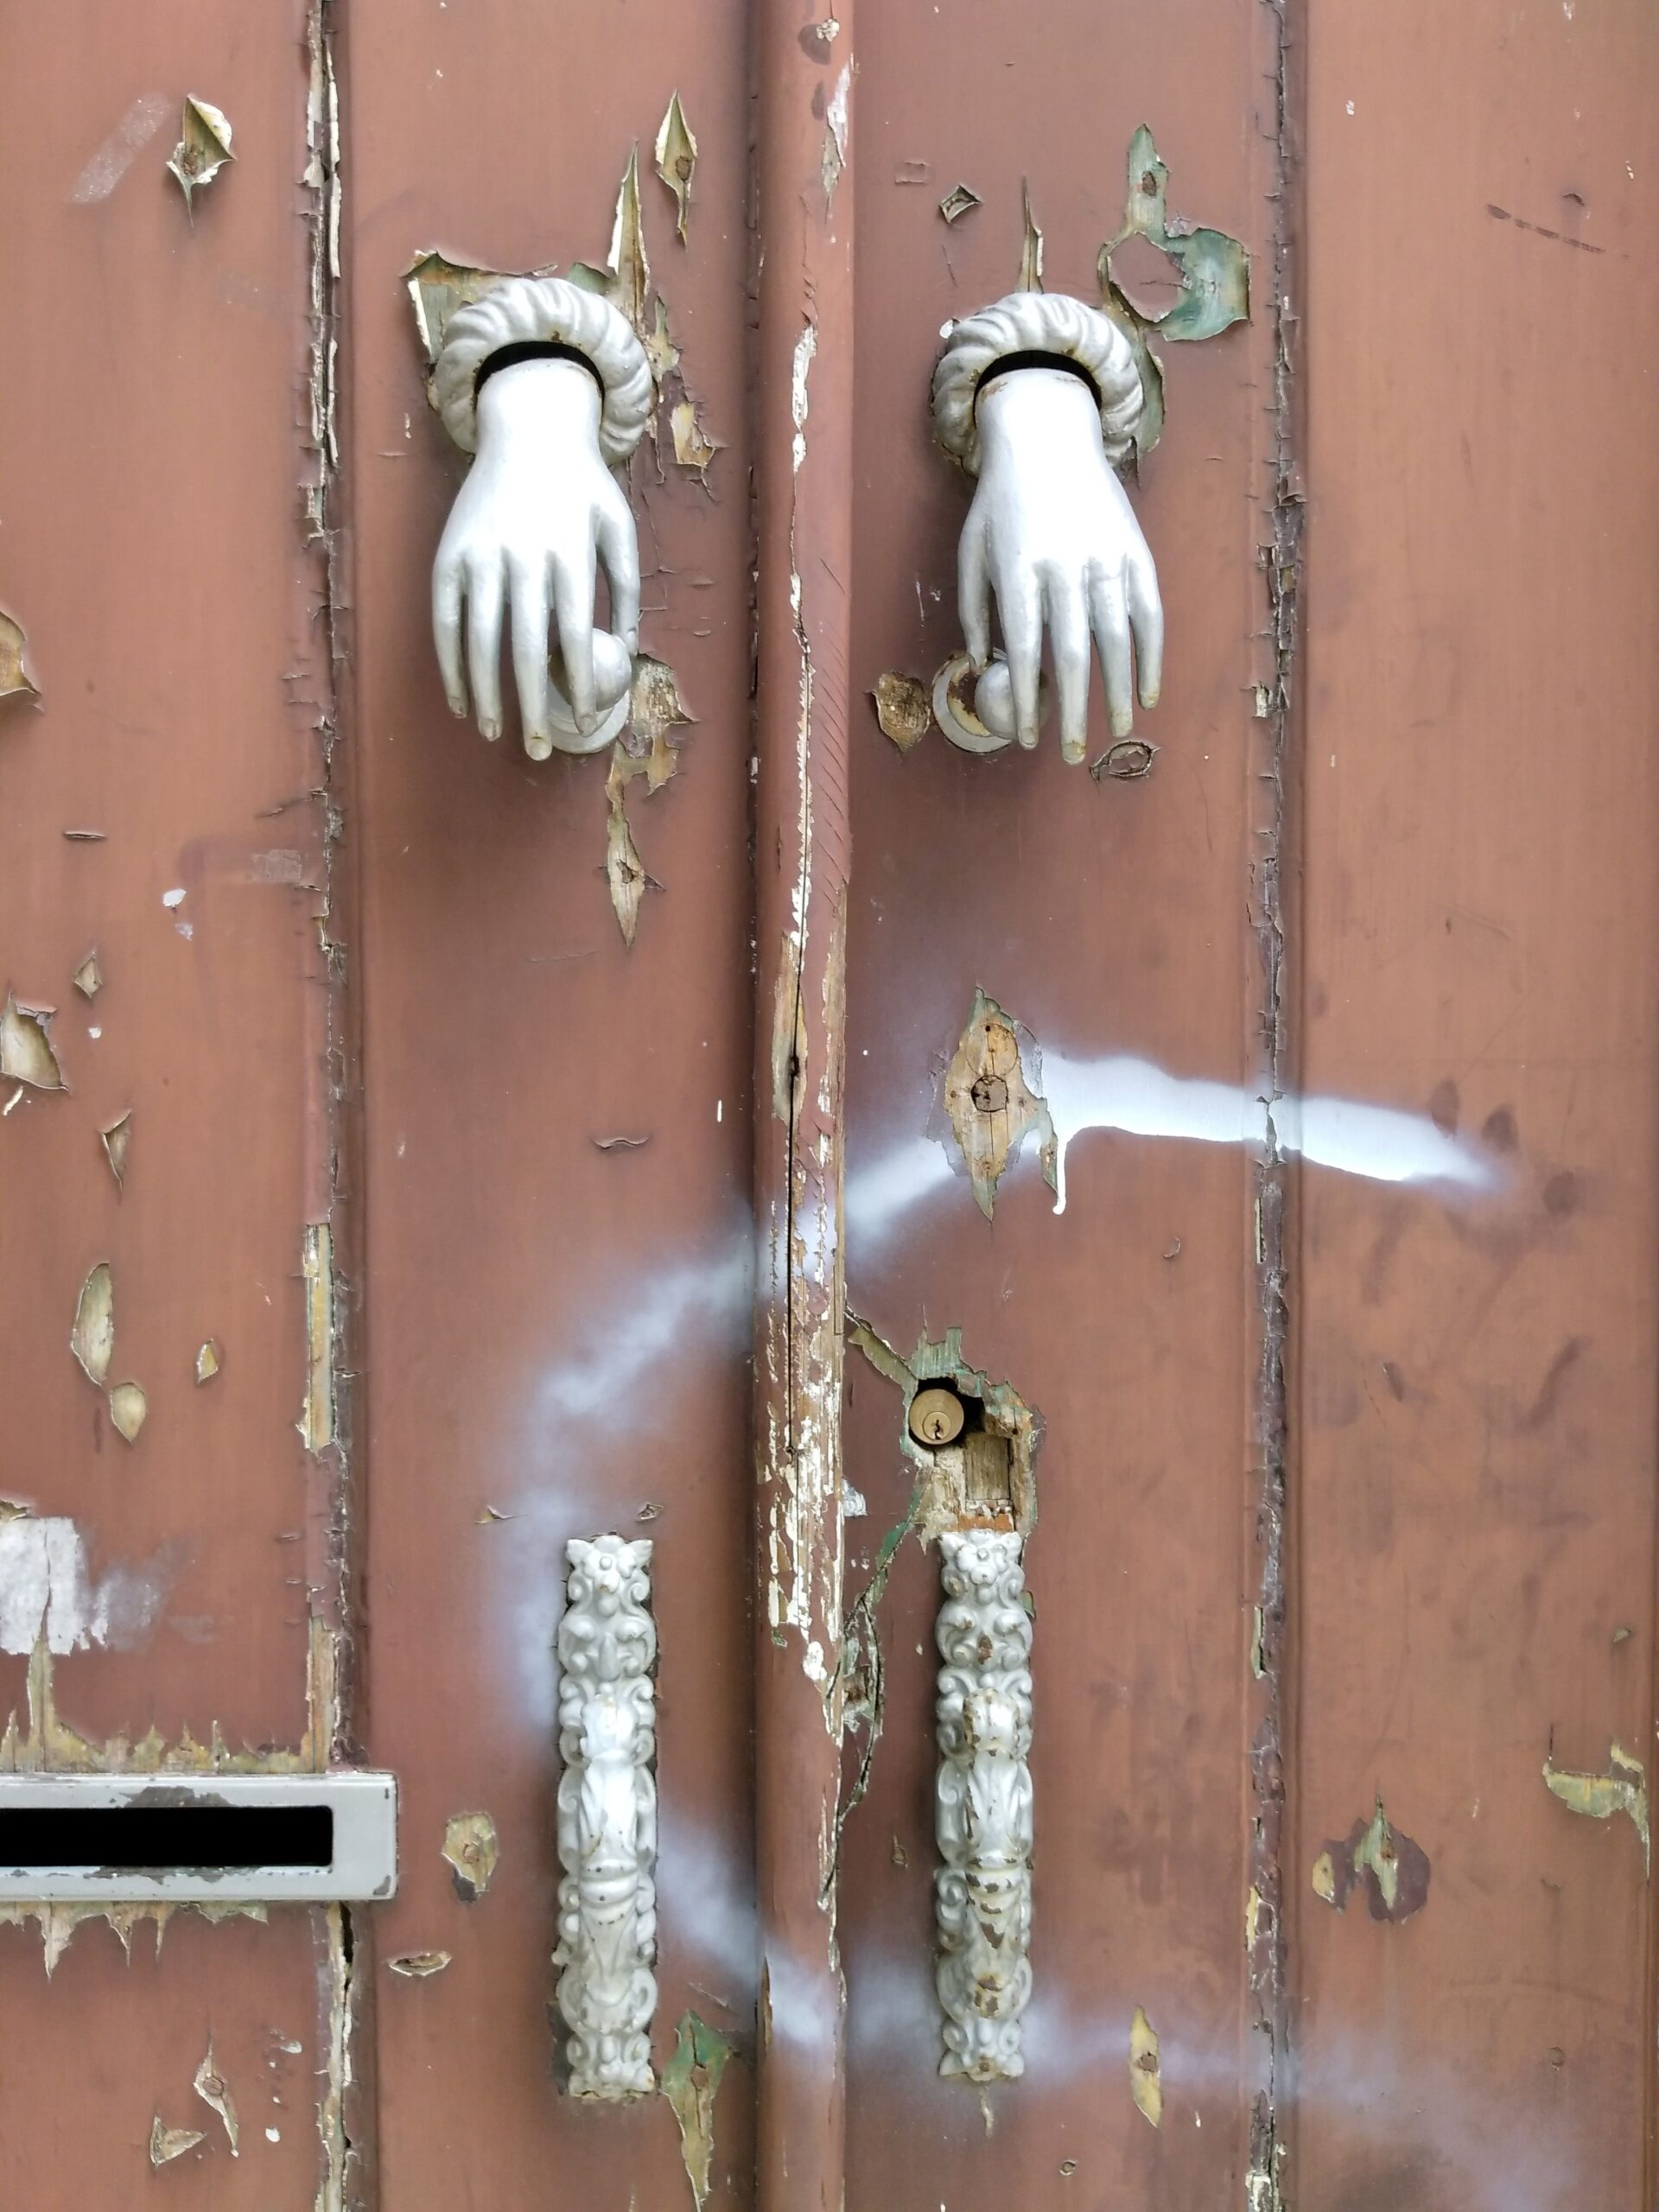 Image of doors with statue hands.